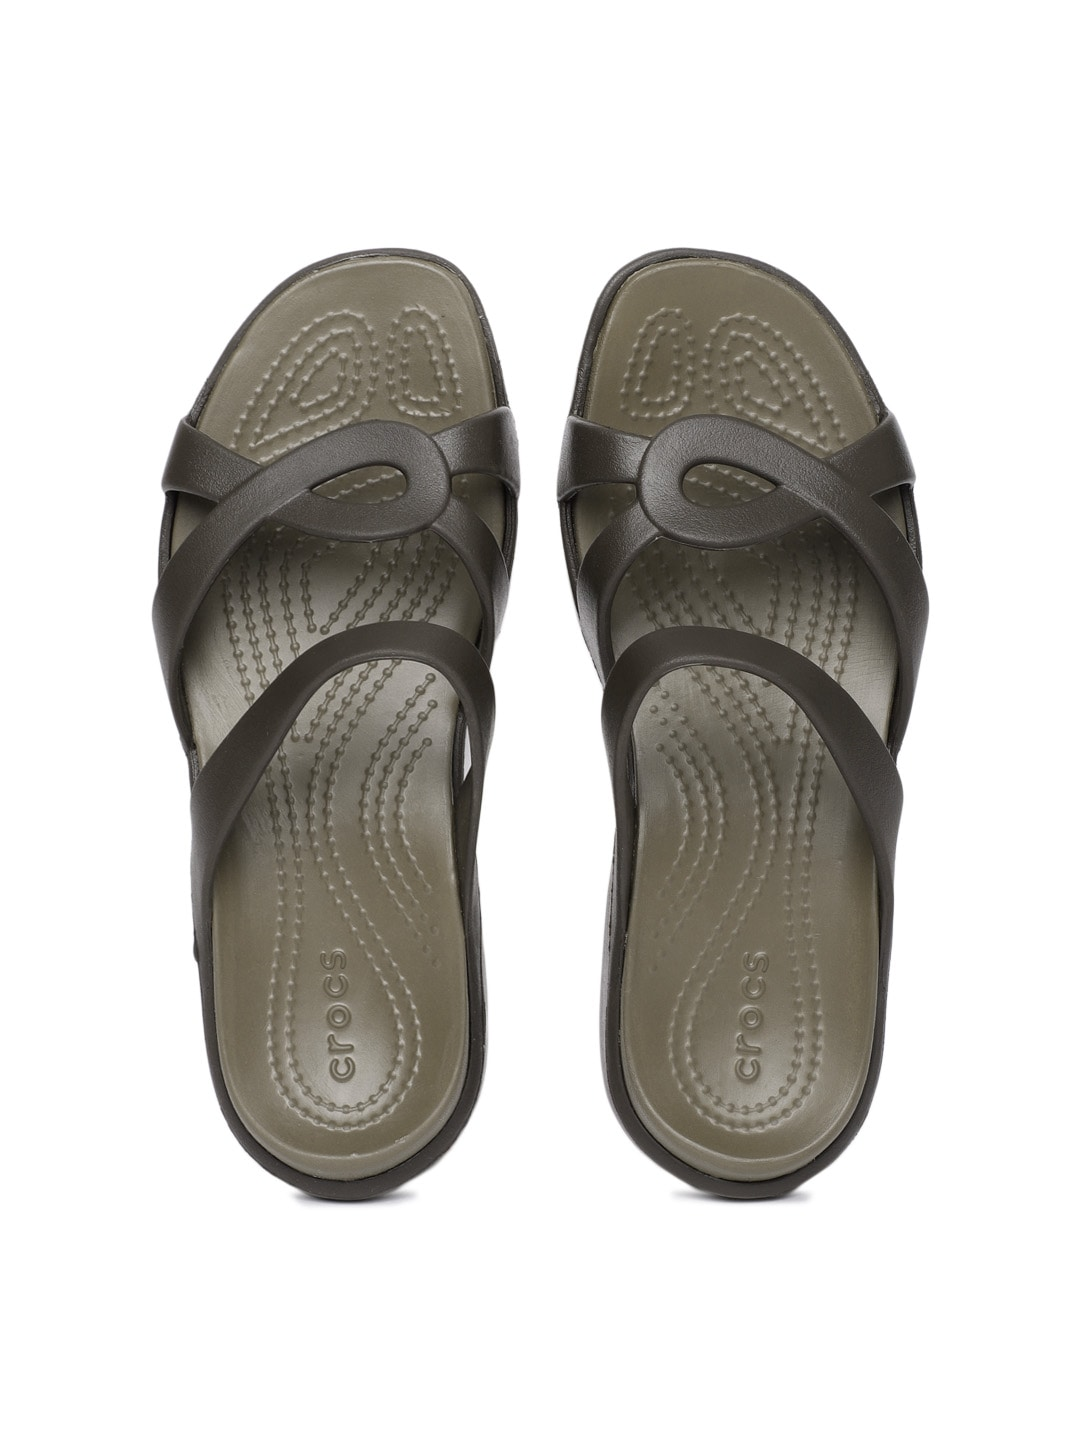 fa440e44a634 Crocs Shoes Online - Buy Crocs Flip Flops   Sandals Online in India - Myntra